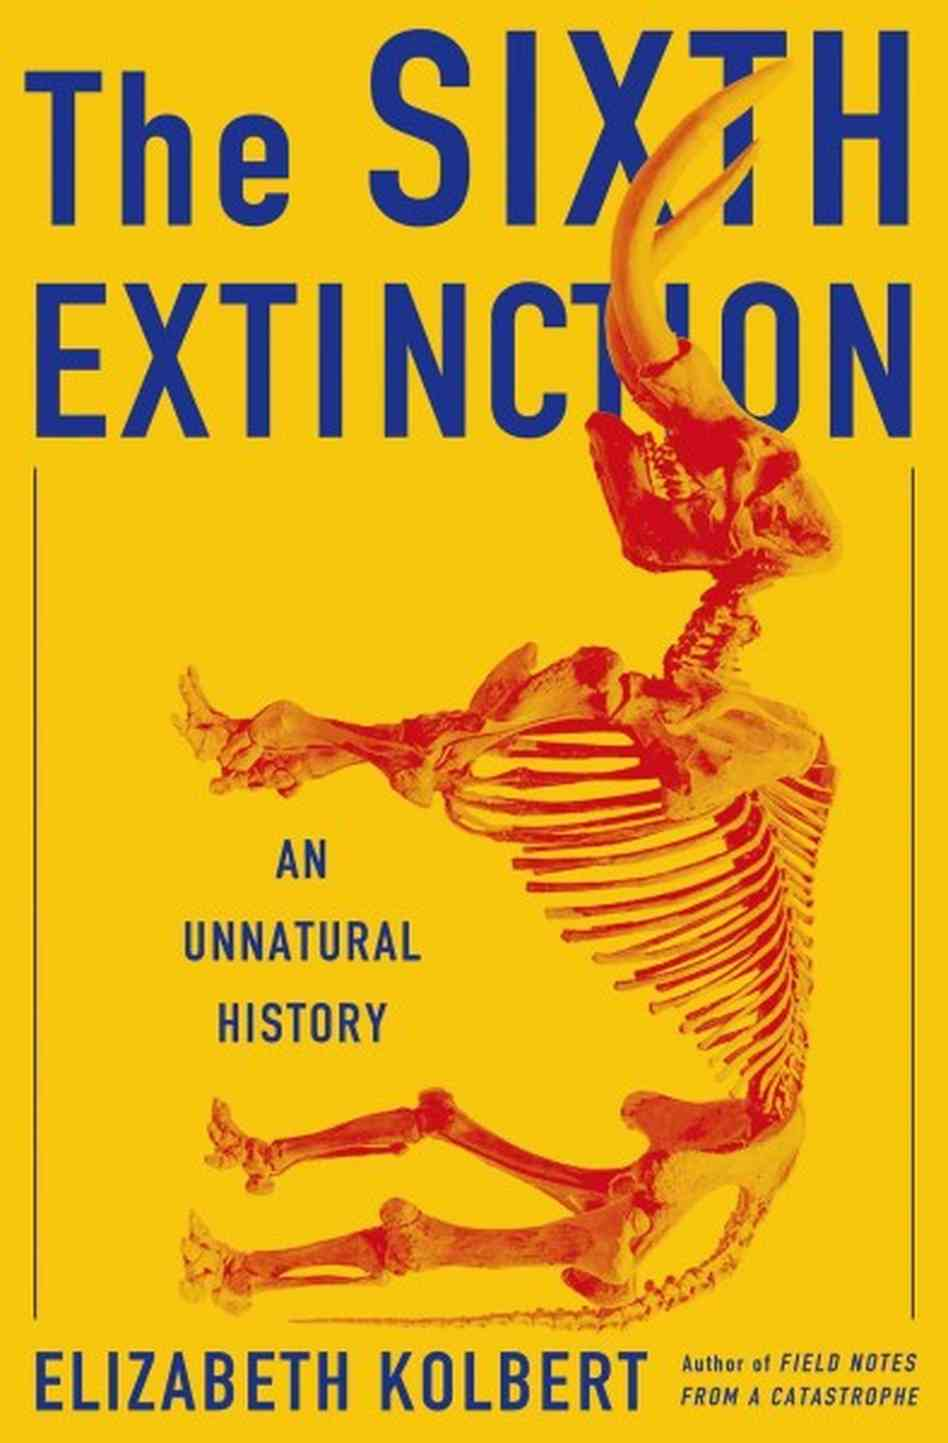 Book Review: The Sixth Extinction